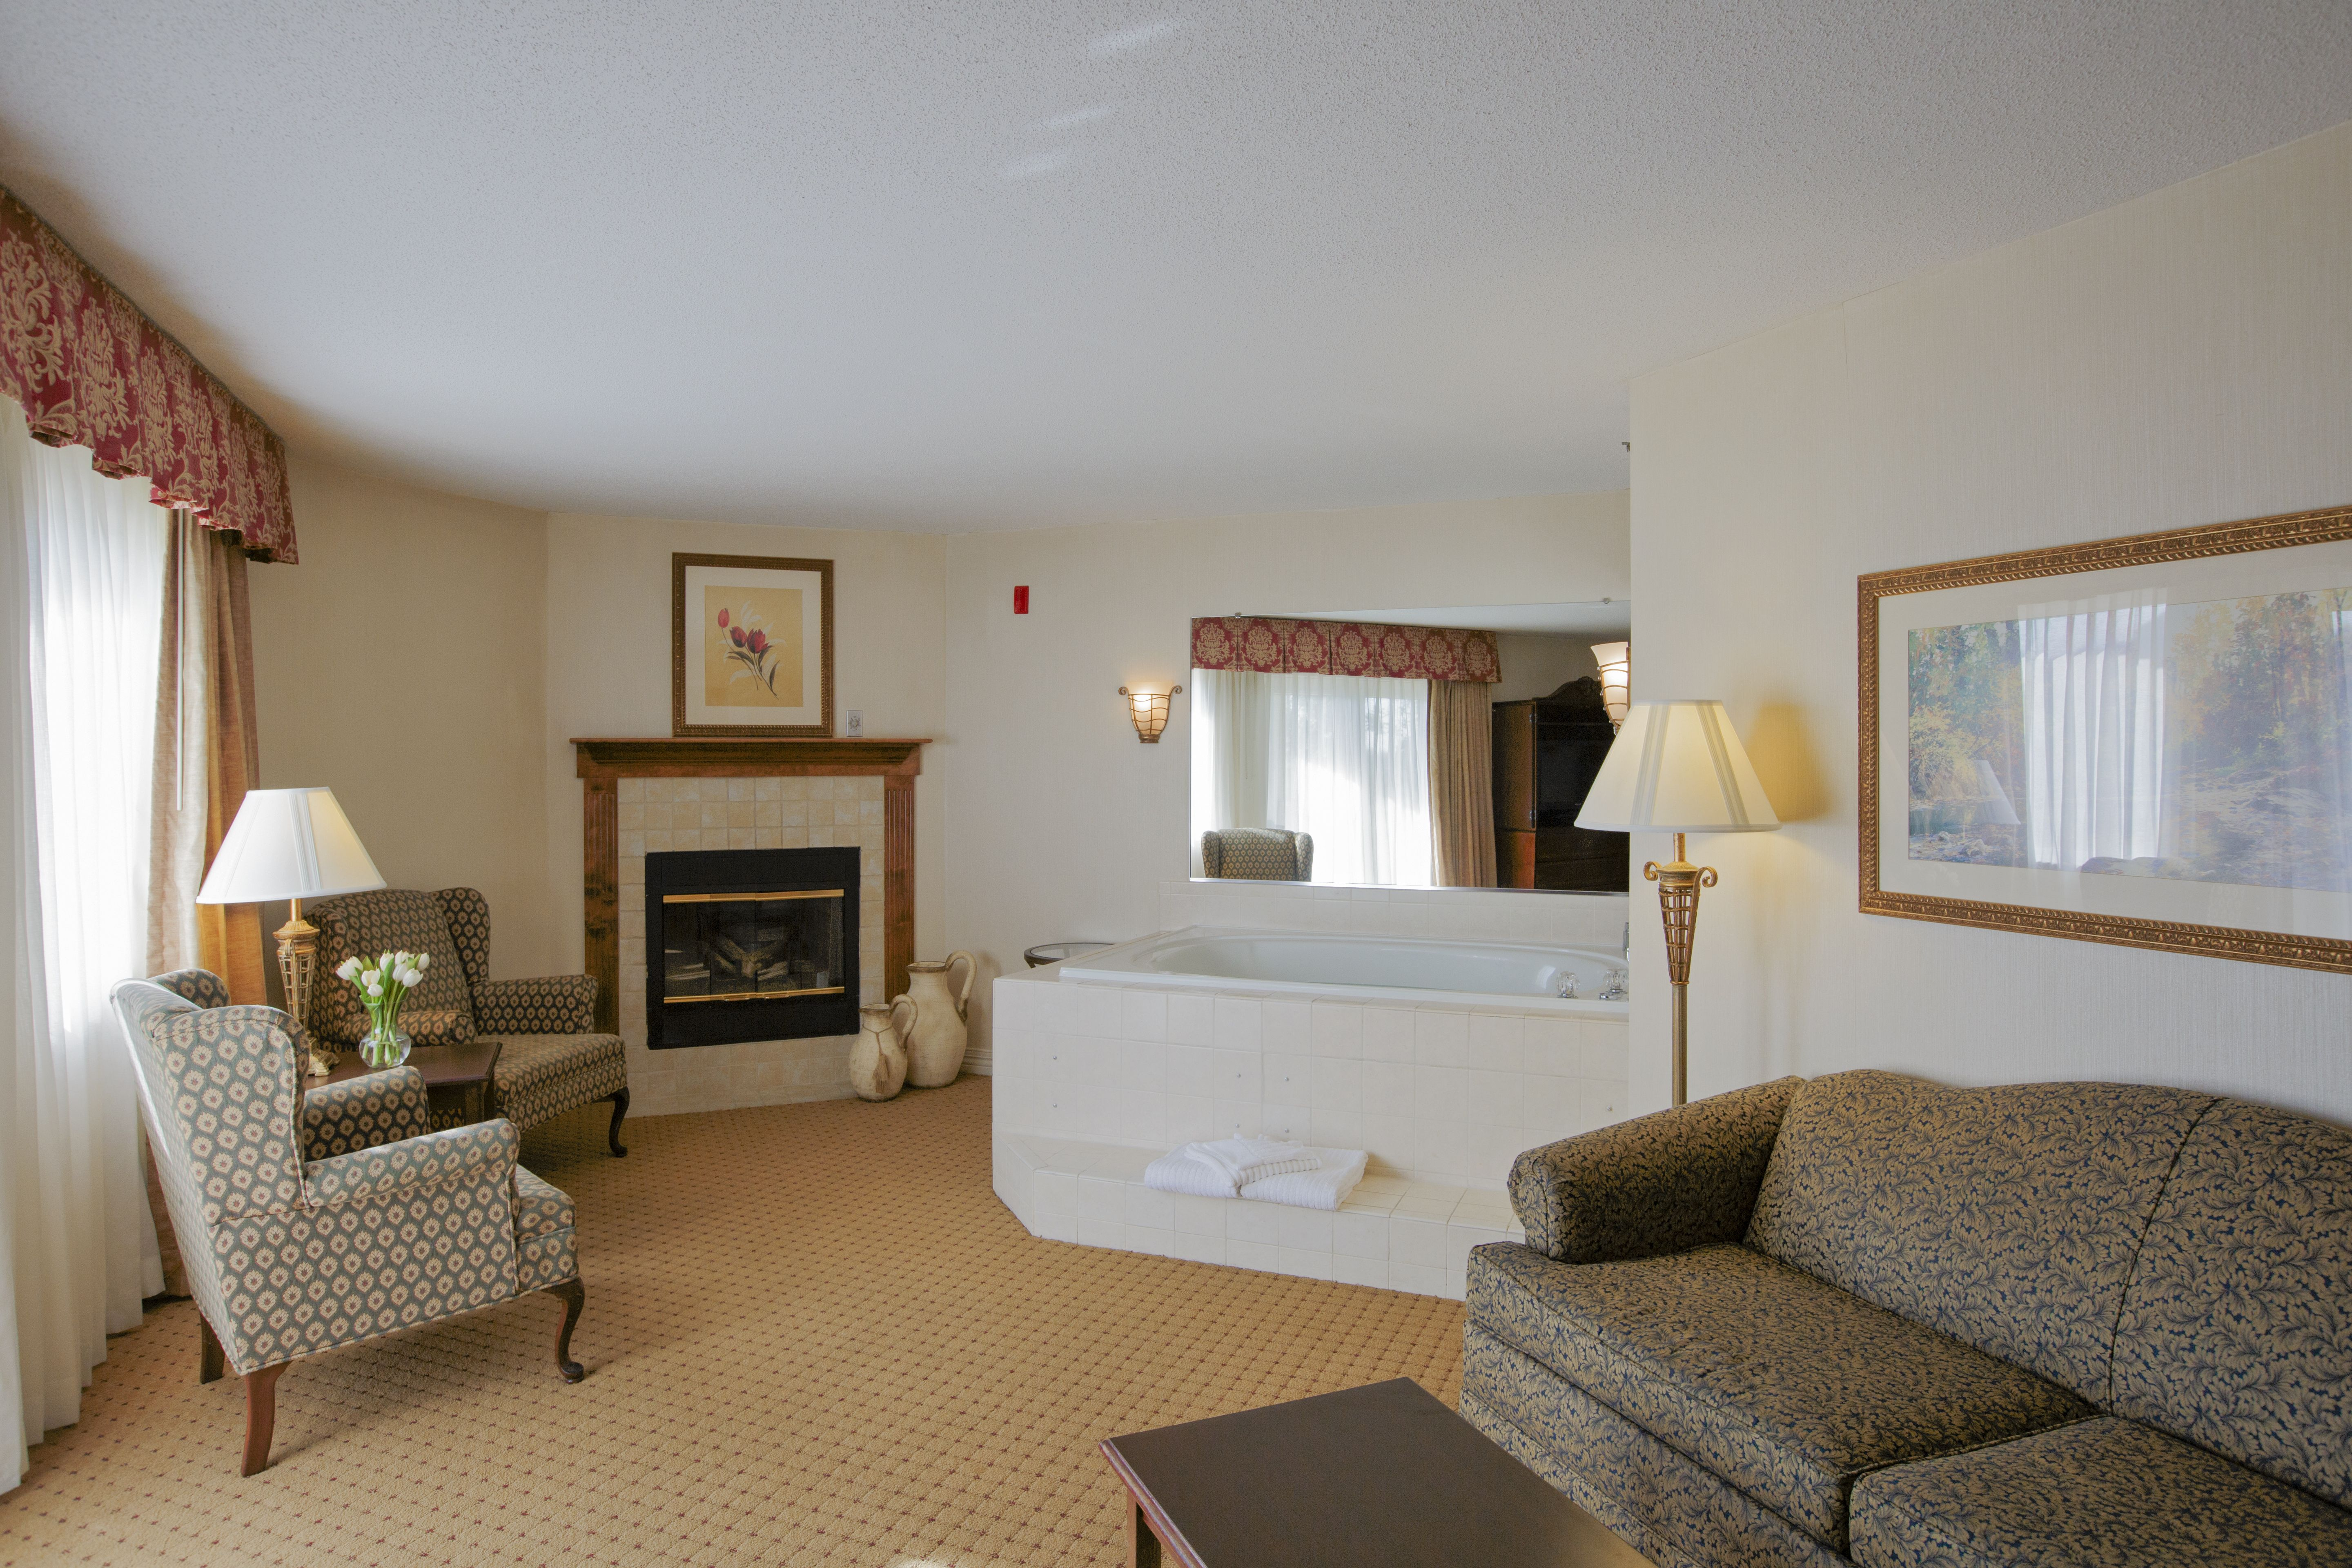 Pigeon Forge Hotel Rooms With Fireplace Jet Tub And More